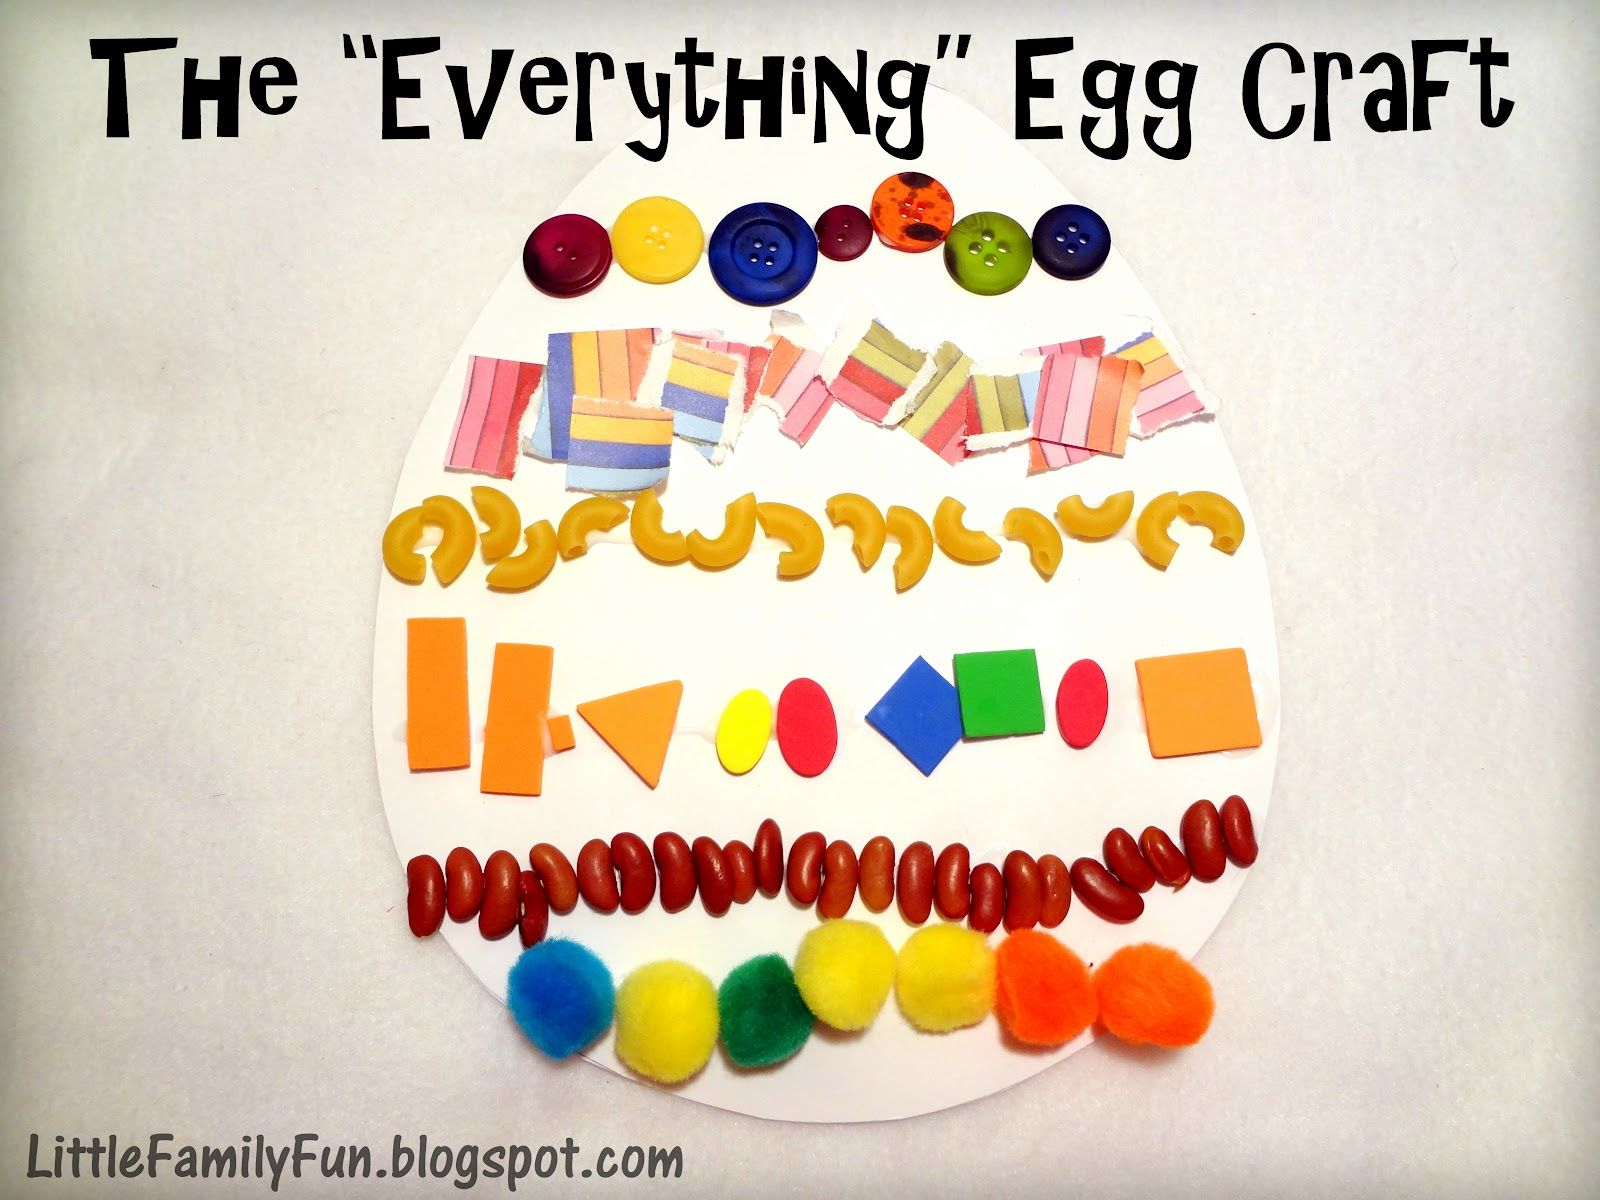 Little Family Fun: Easter Index